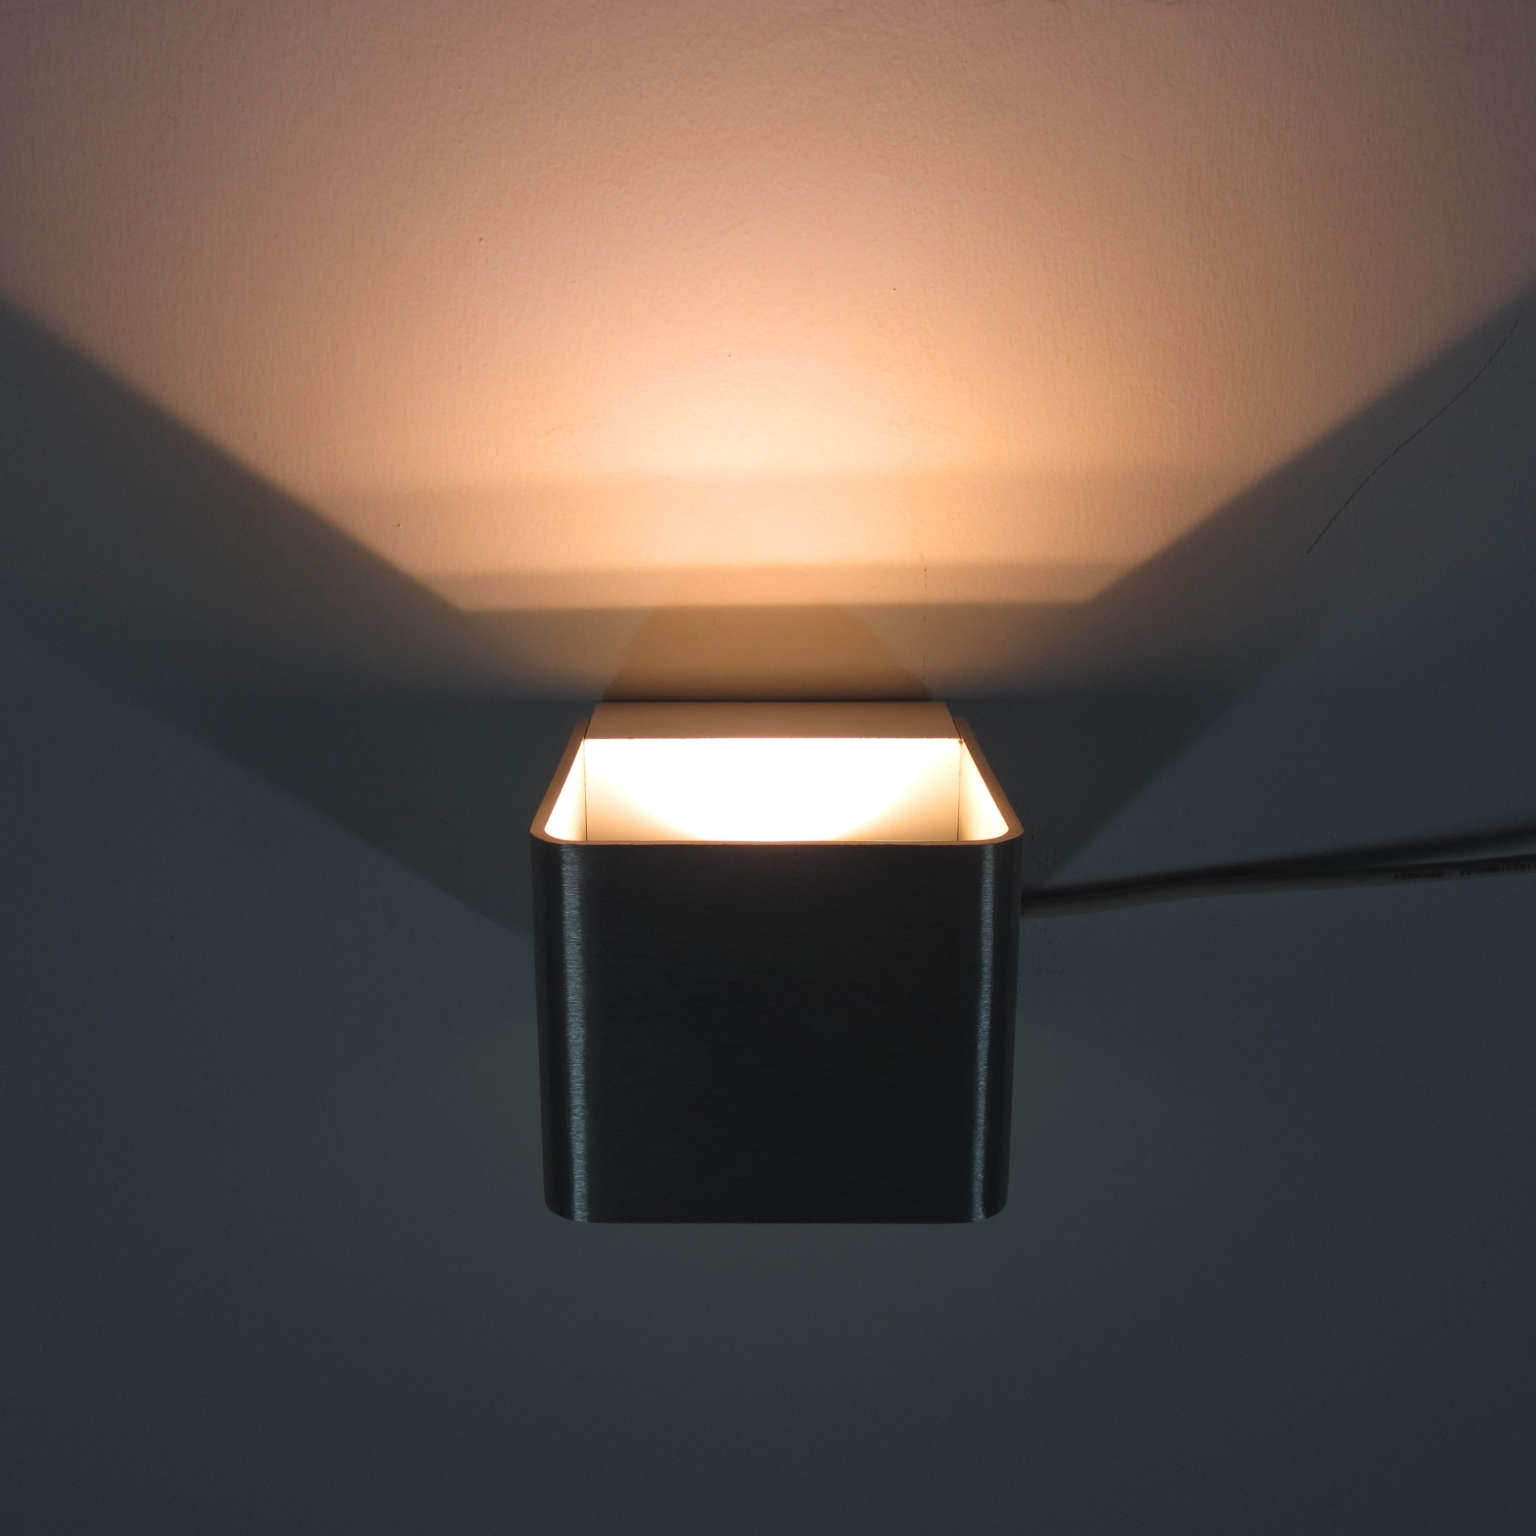 6W LED Stair Up Down Wall Light Spot Office Lamp Hall Path Sconce Lighting